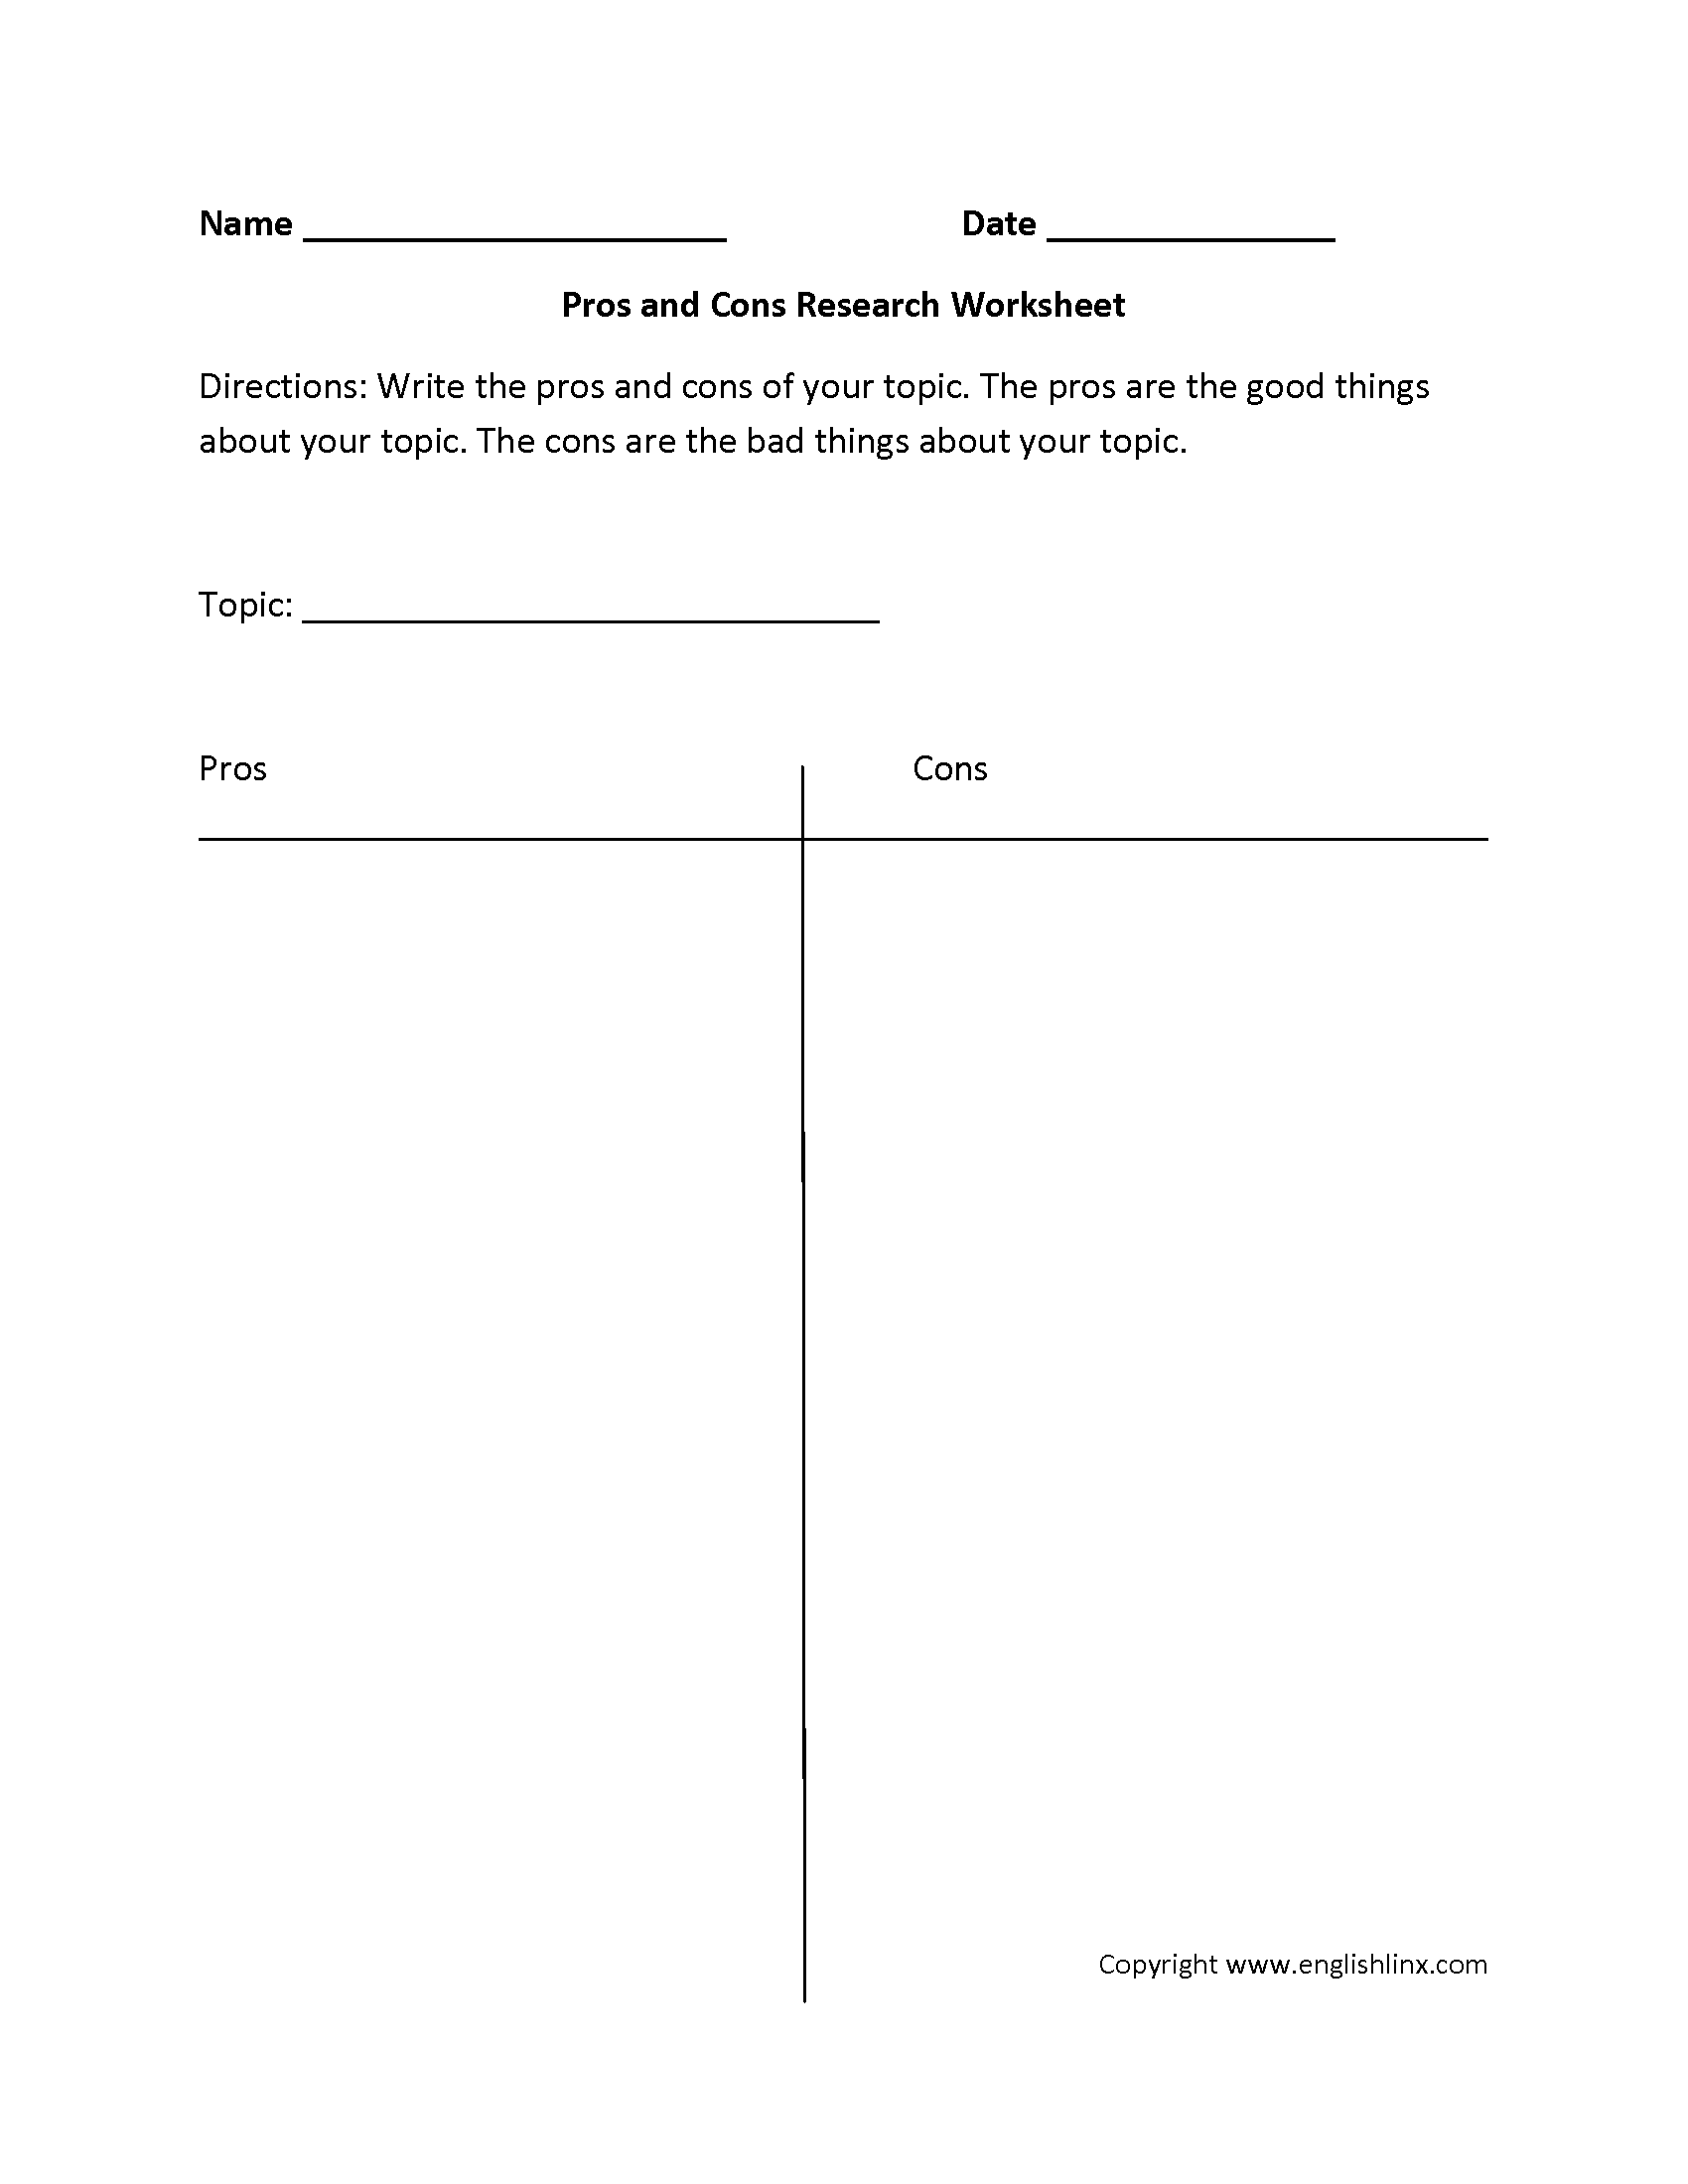 Aldiablosus  Scenic Englishlinxcom  Research Worksheets With Gorgeous Research Worksheet With Appealing Internal And External Conflict Worksheet Also Alkane Nomenclature Worksheet In Addition Parts Of The Eye Worksheet And Math Worksheets For Free As Well As Letter T Worksheets For Preschoolers Additionally Printable Adding And Subtracting Integers Worksheet From Englishlinxcom With Aldiablosus  Gorgeous Englishlinxcom  Research Worksheets With Appealing Research Worksheet And Scenic Internal And External Conflict Worksheet Also Alkane Nomenclature Worksheet In Addition Parts Of The Eye Worksheet From Englishlinxcom